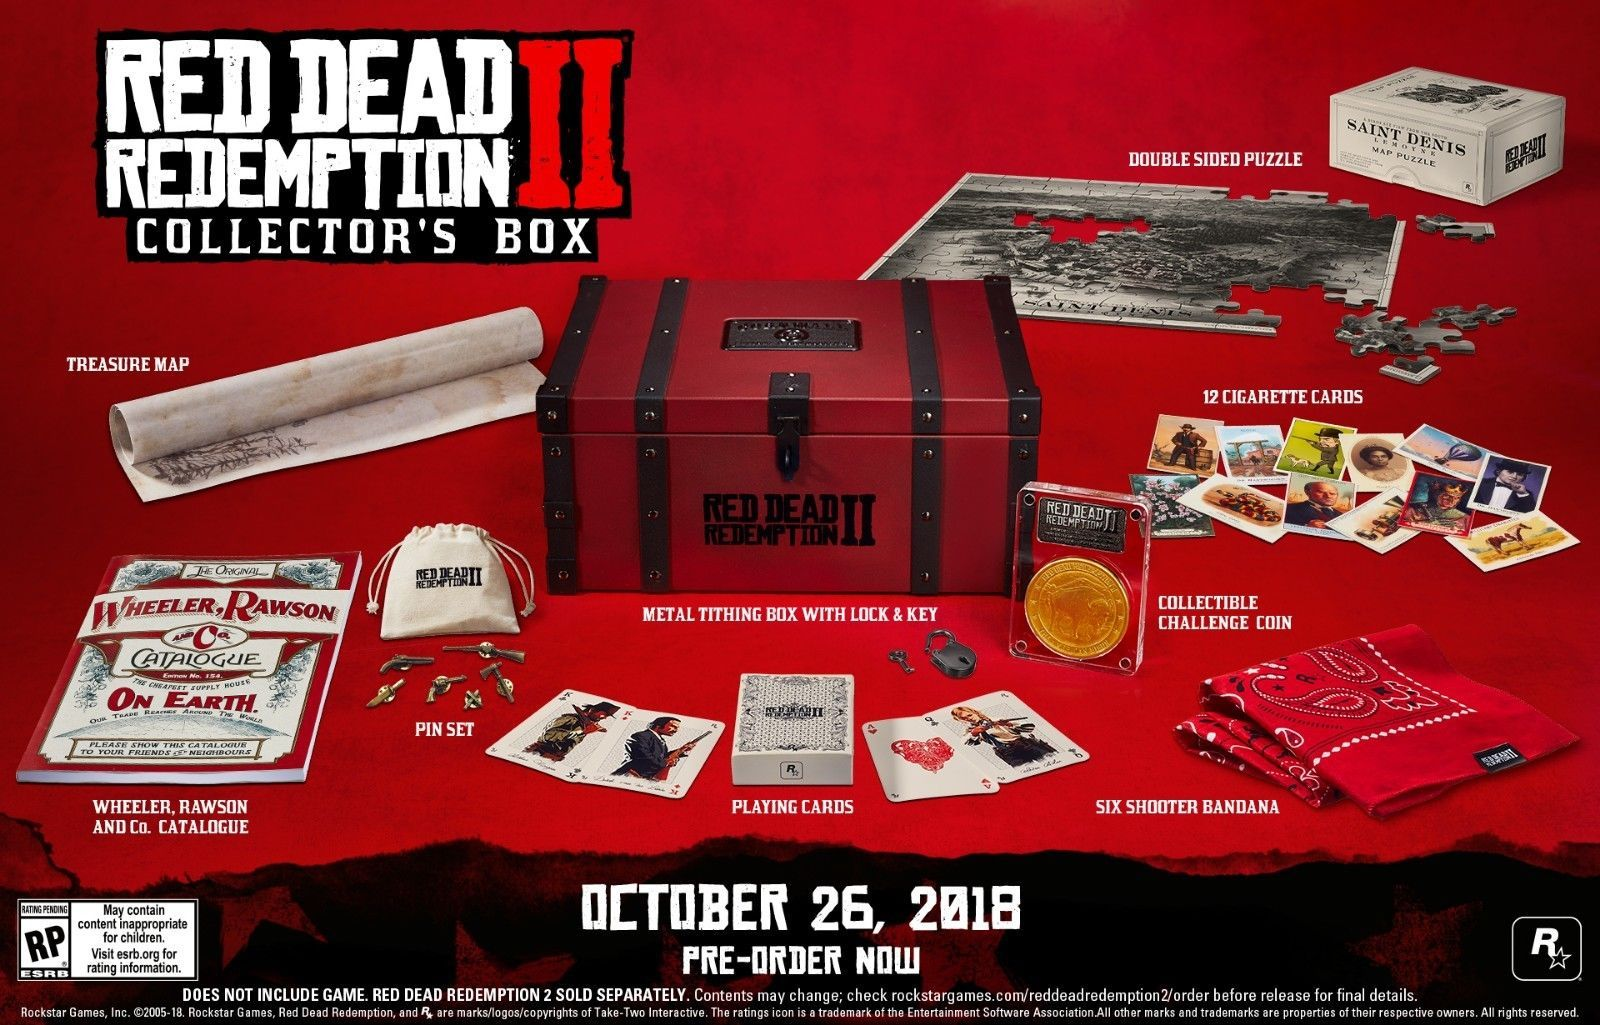 Rdr2 Red Dead Redemption 2 Collector S Edition Box Red Dead Redemption Red Dead Redemption Ii Redemption